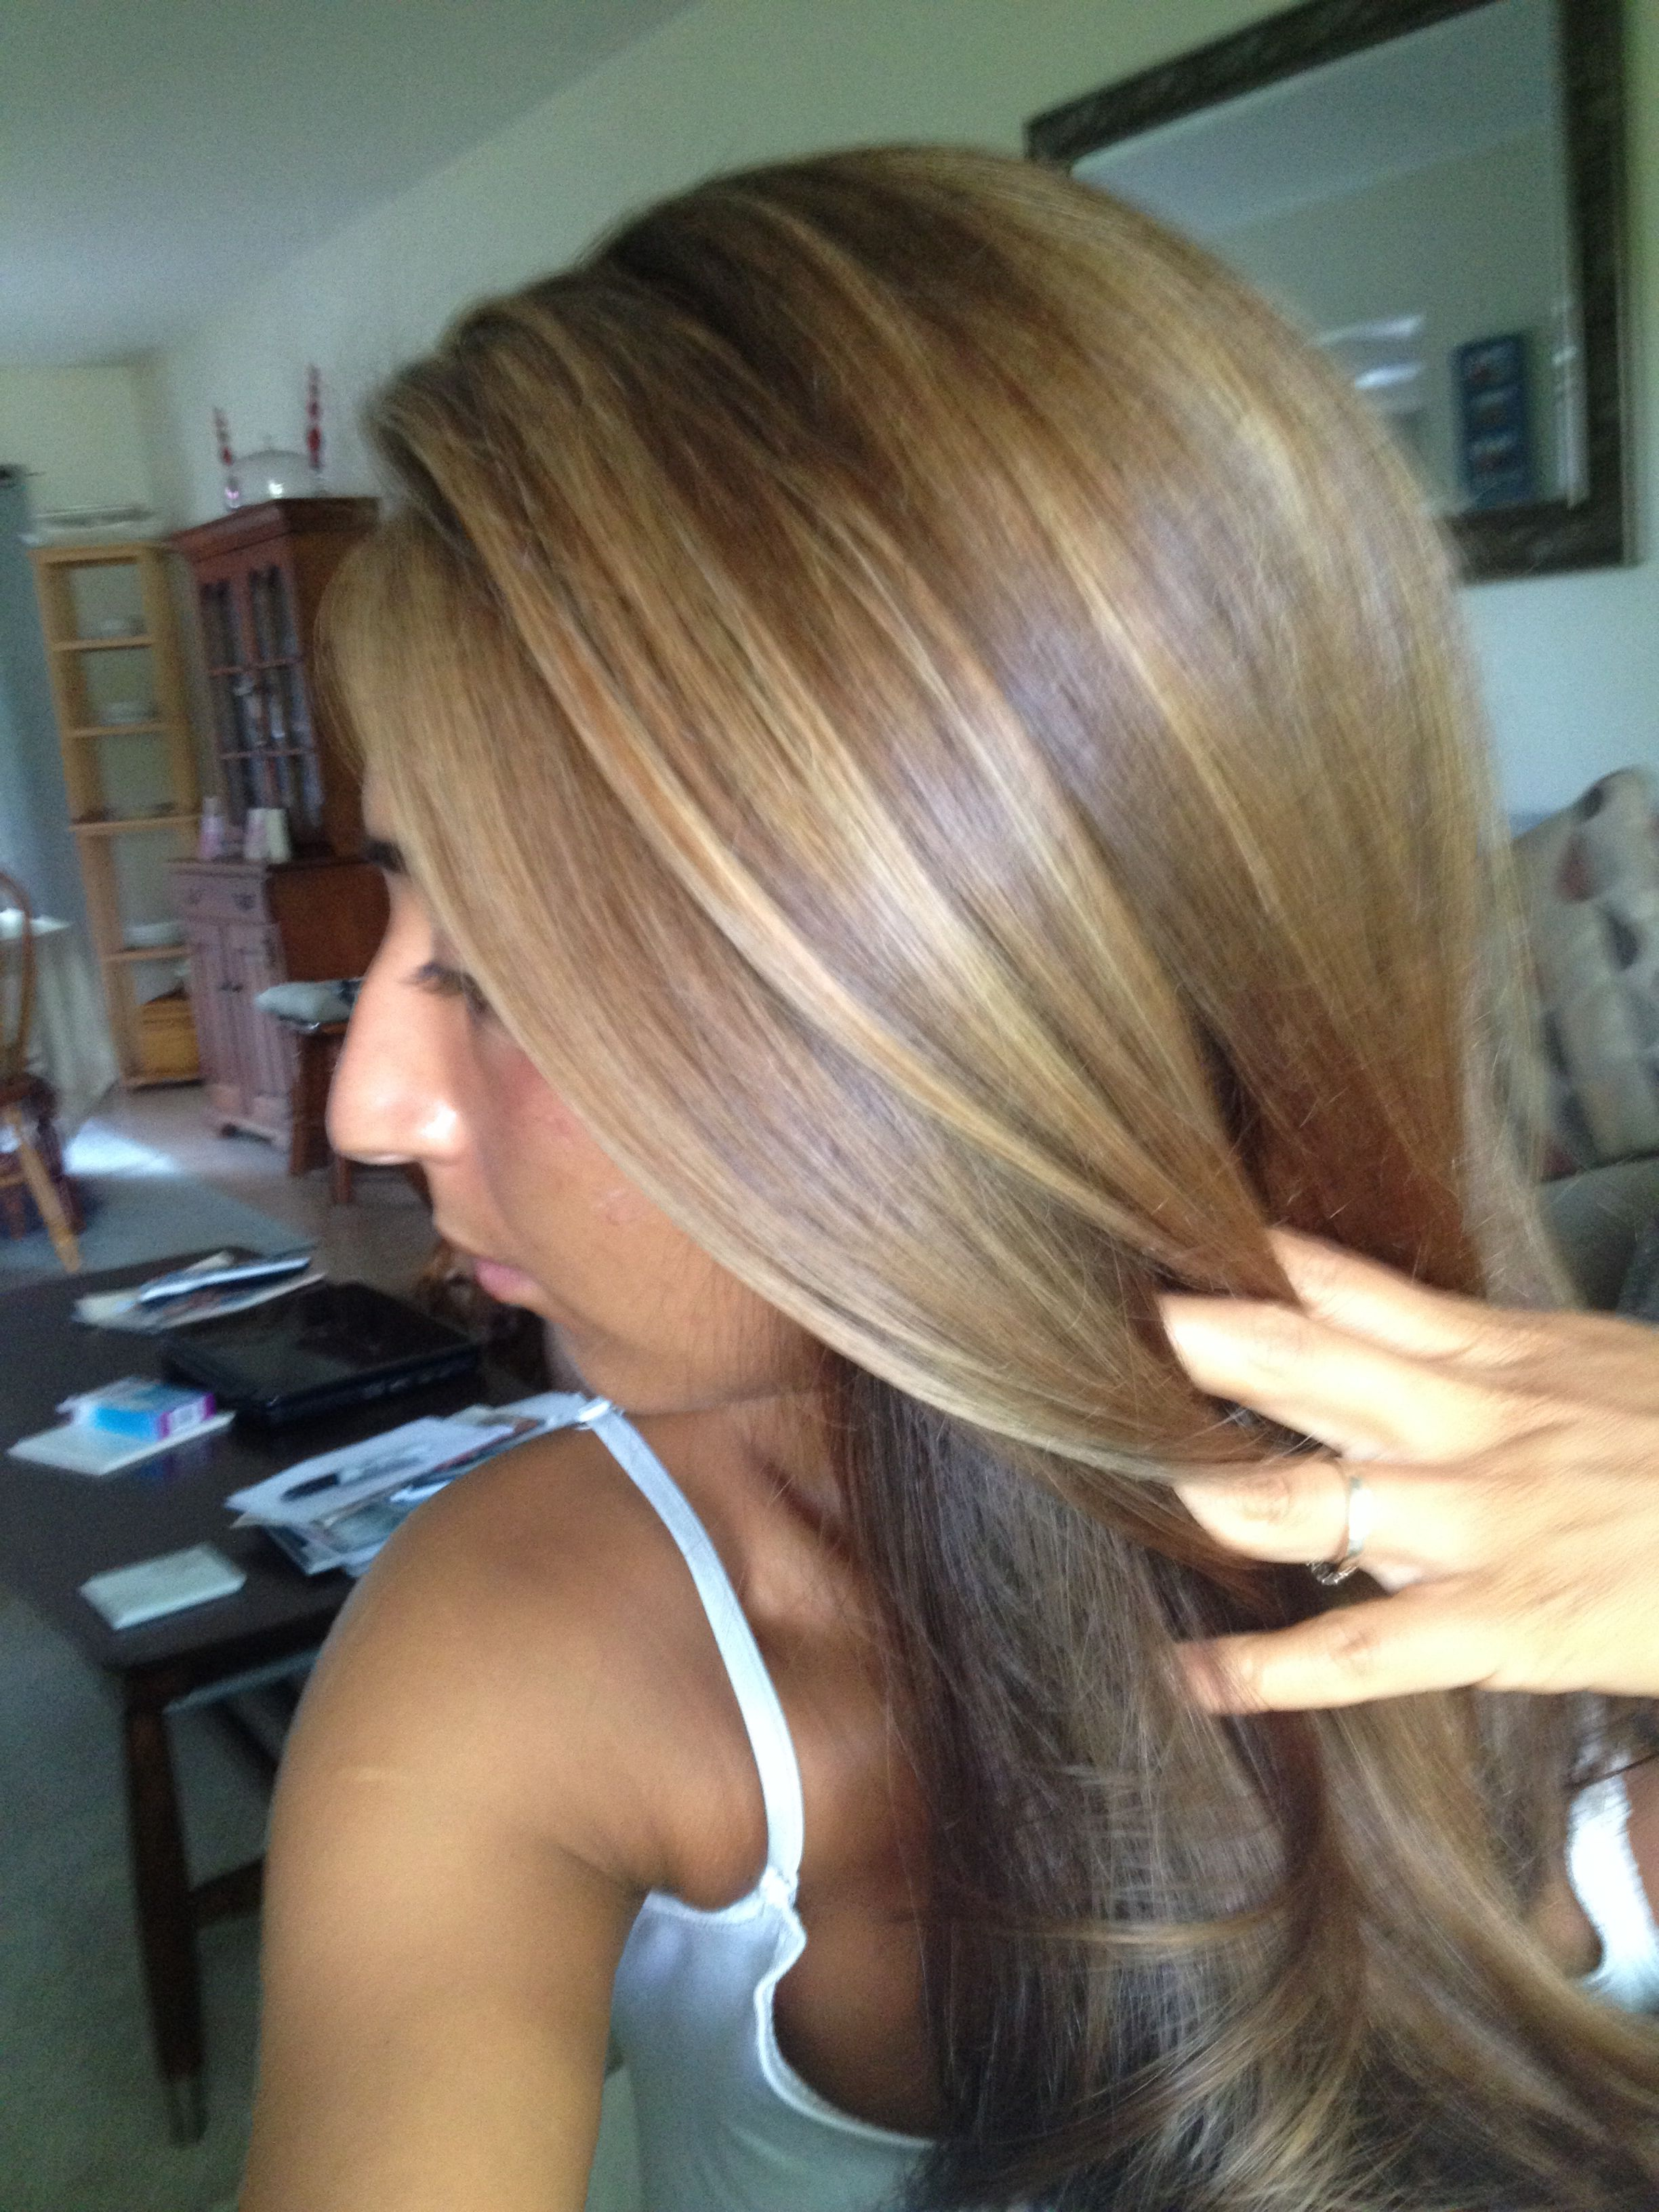 Highlights 7g And 9v Redken Glazes By Me And On Me